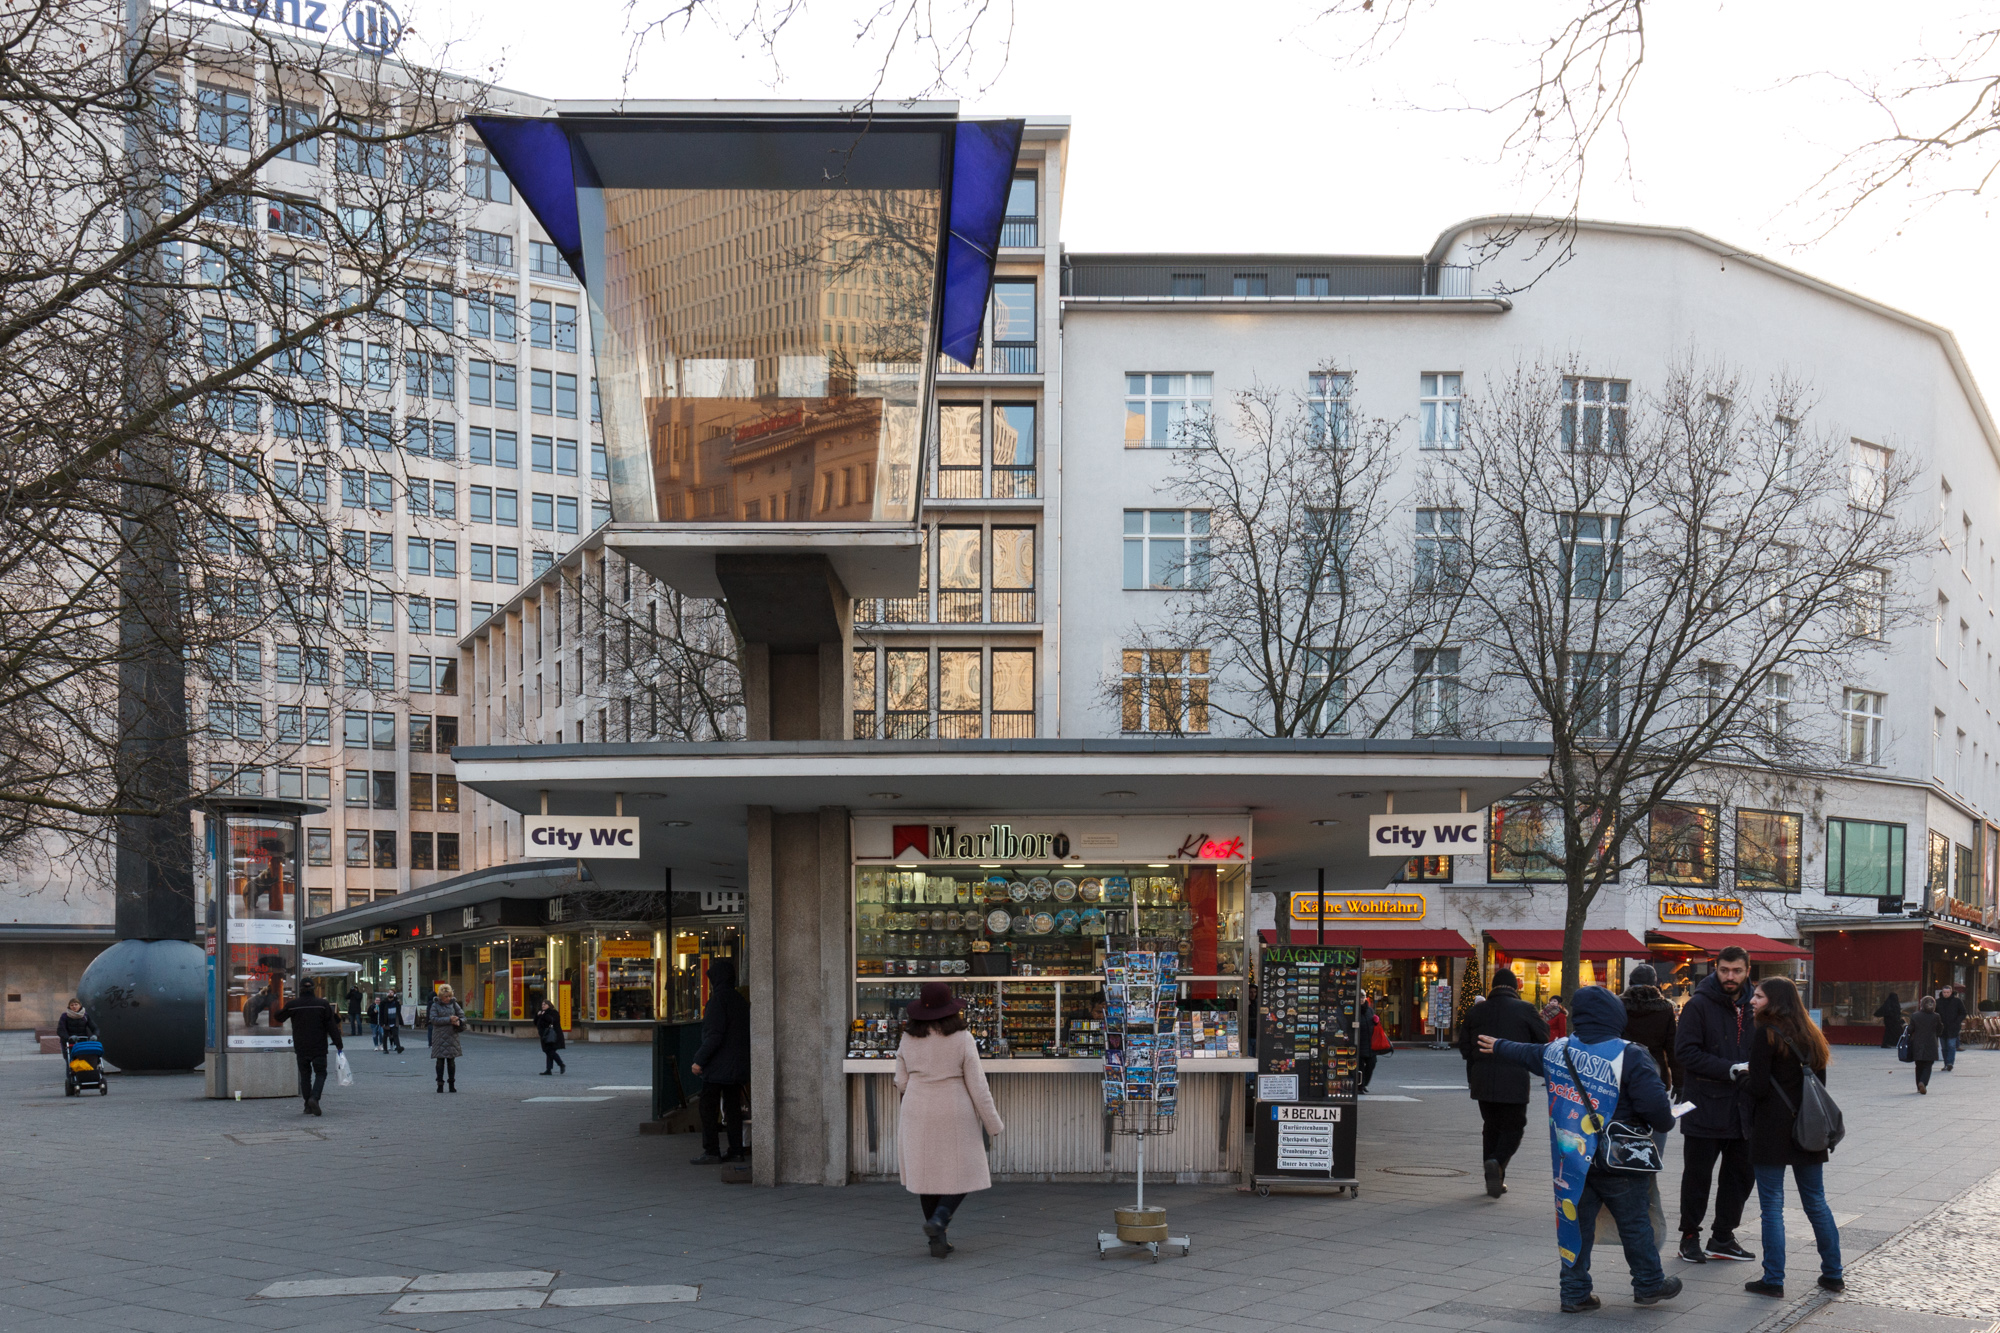 The Verkehrskanzel, a 1950s Traffic Control Pulpit on the corner of Kurfürstendamm and Joachimstaler Straße in Berlin